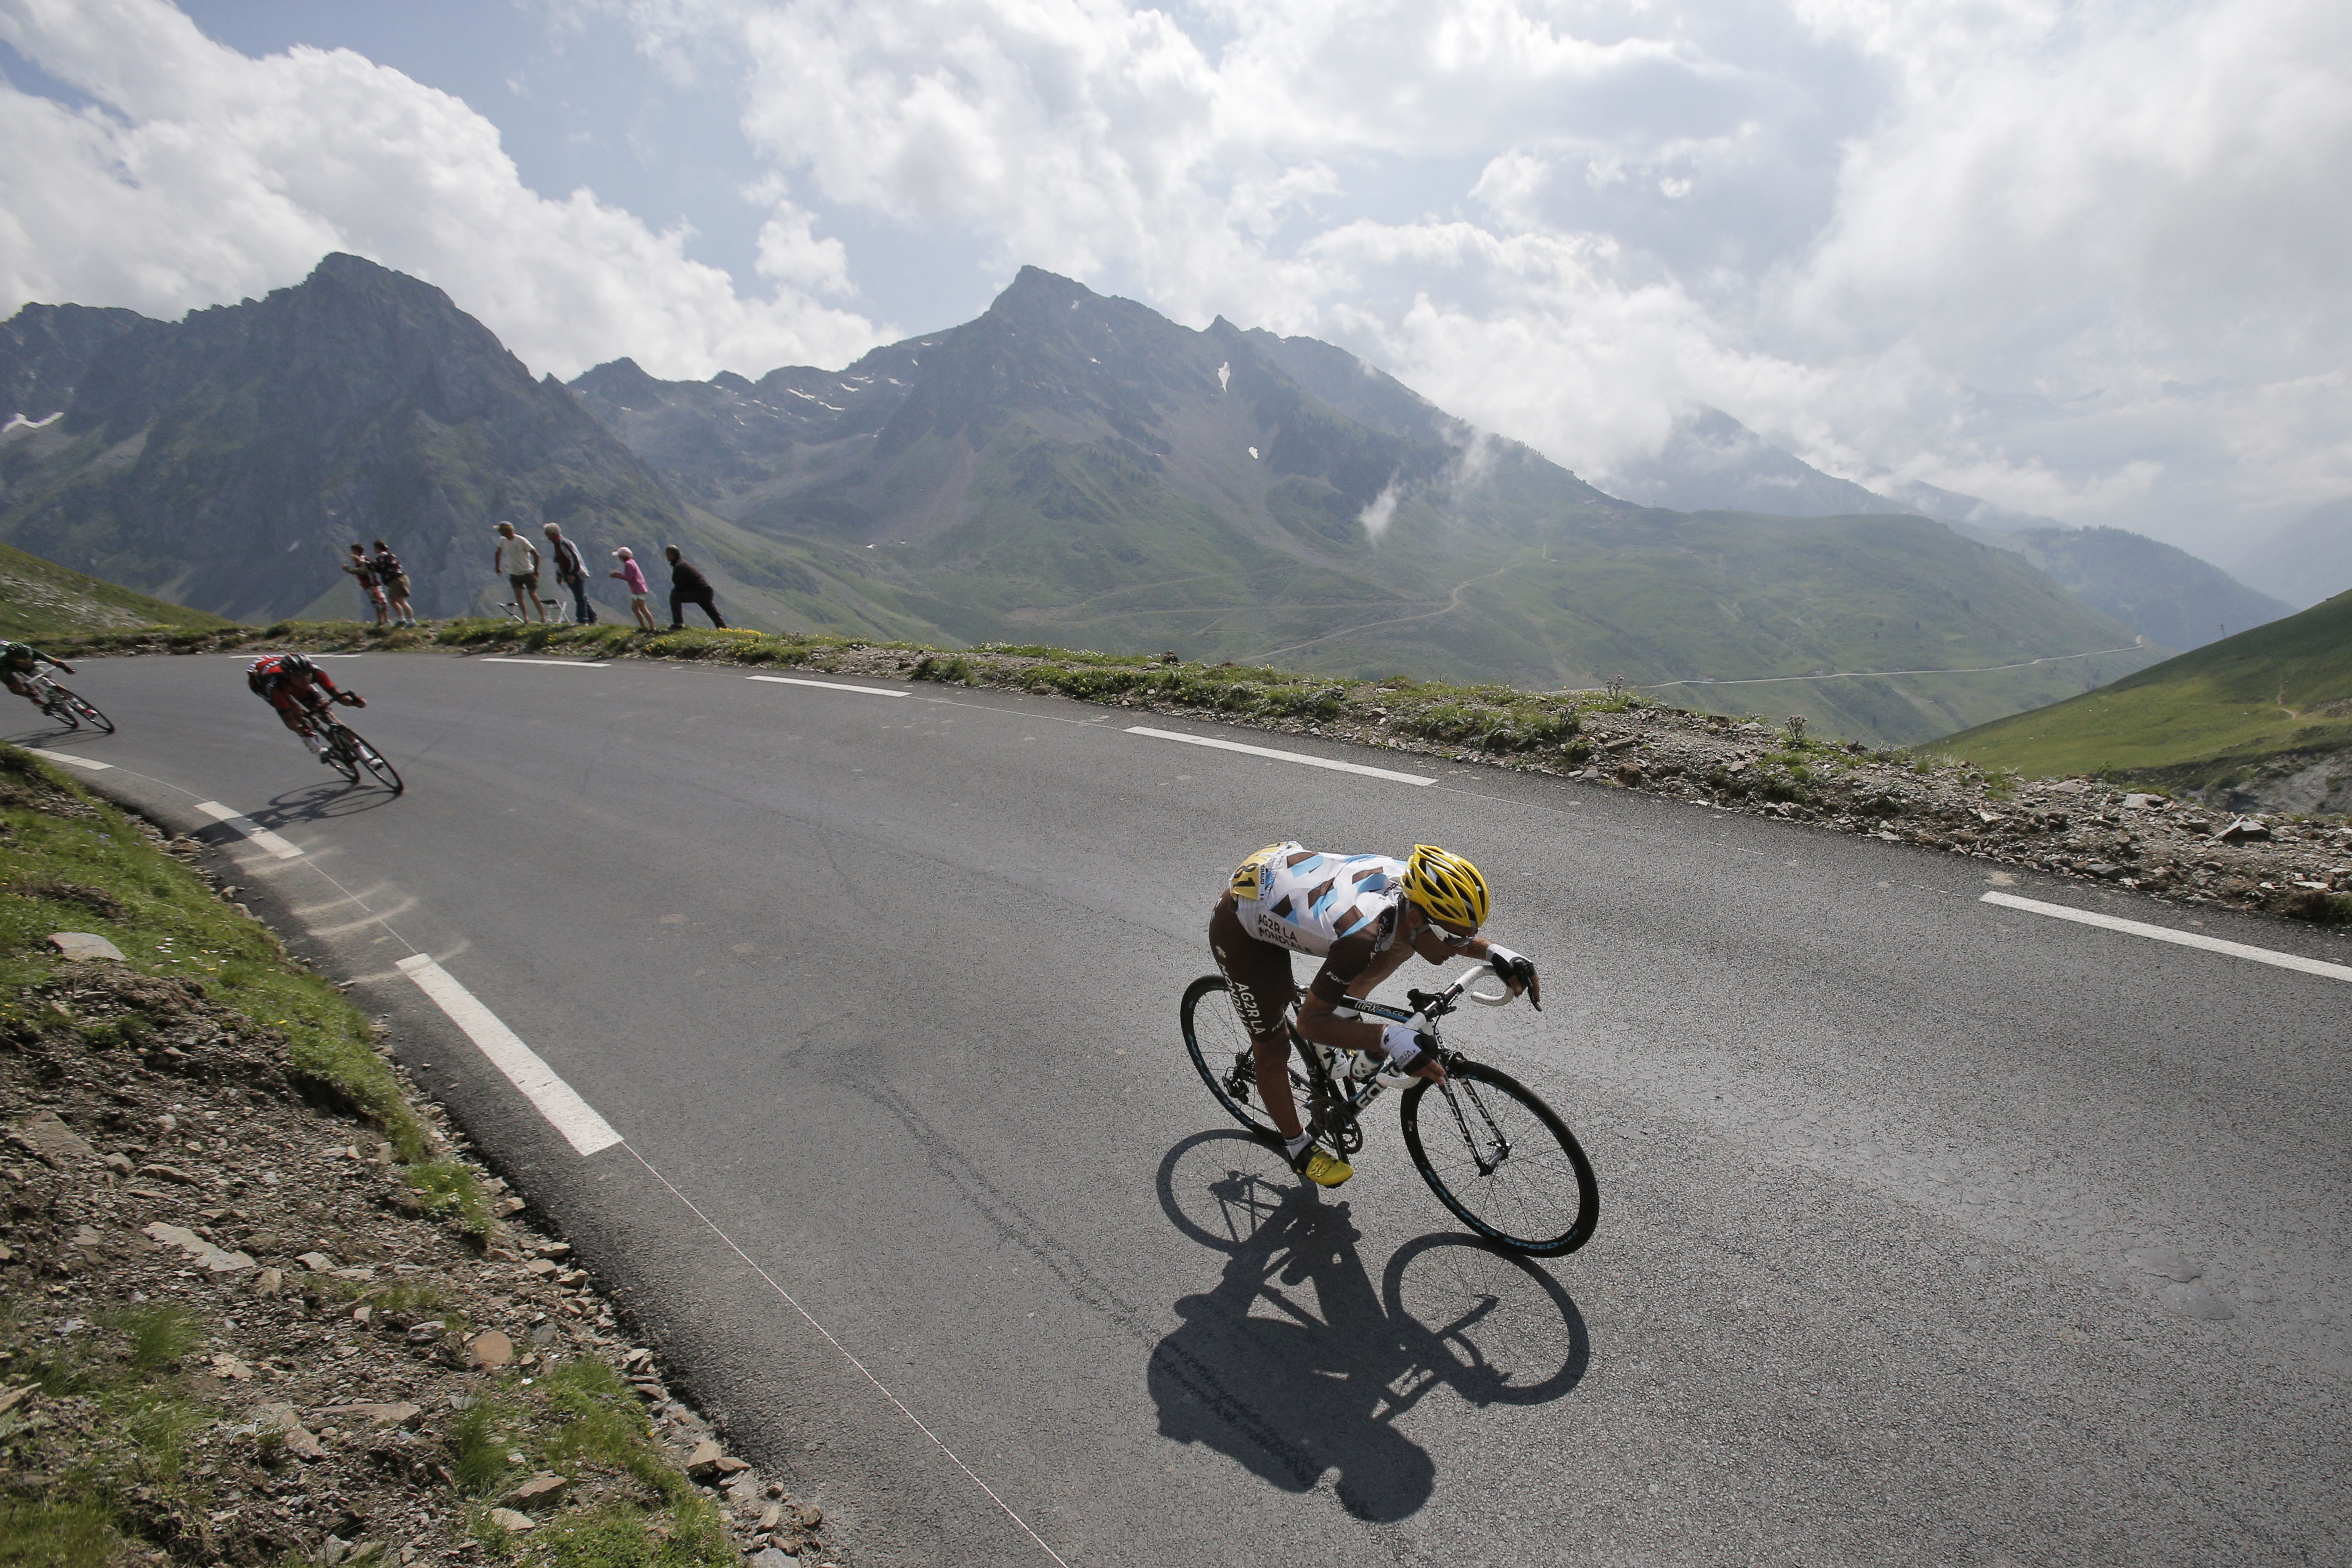 France's Jean-Christophe Peraud, front, speeds down Tourmalet pass during the eighteenth stage of the Tour de France.